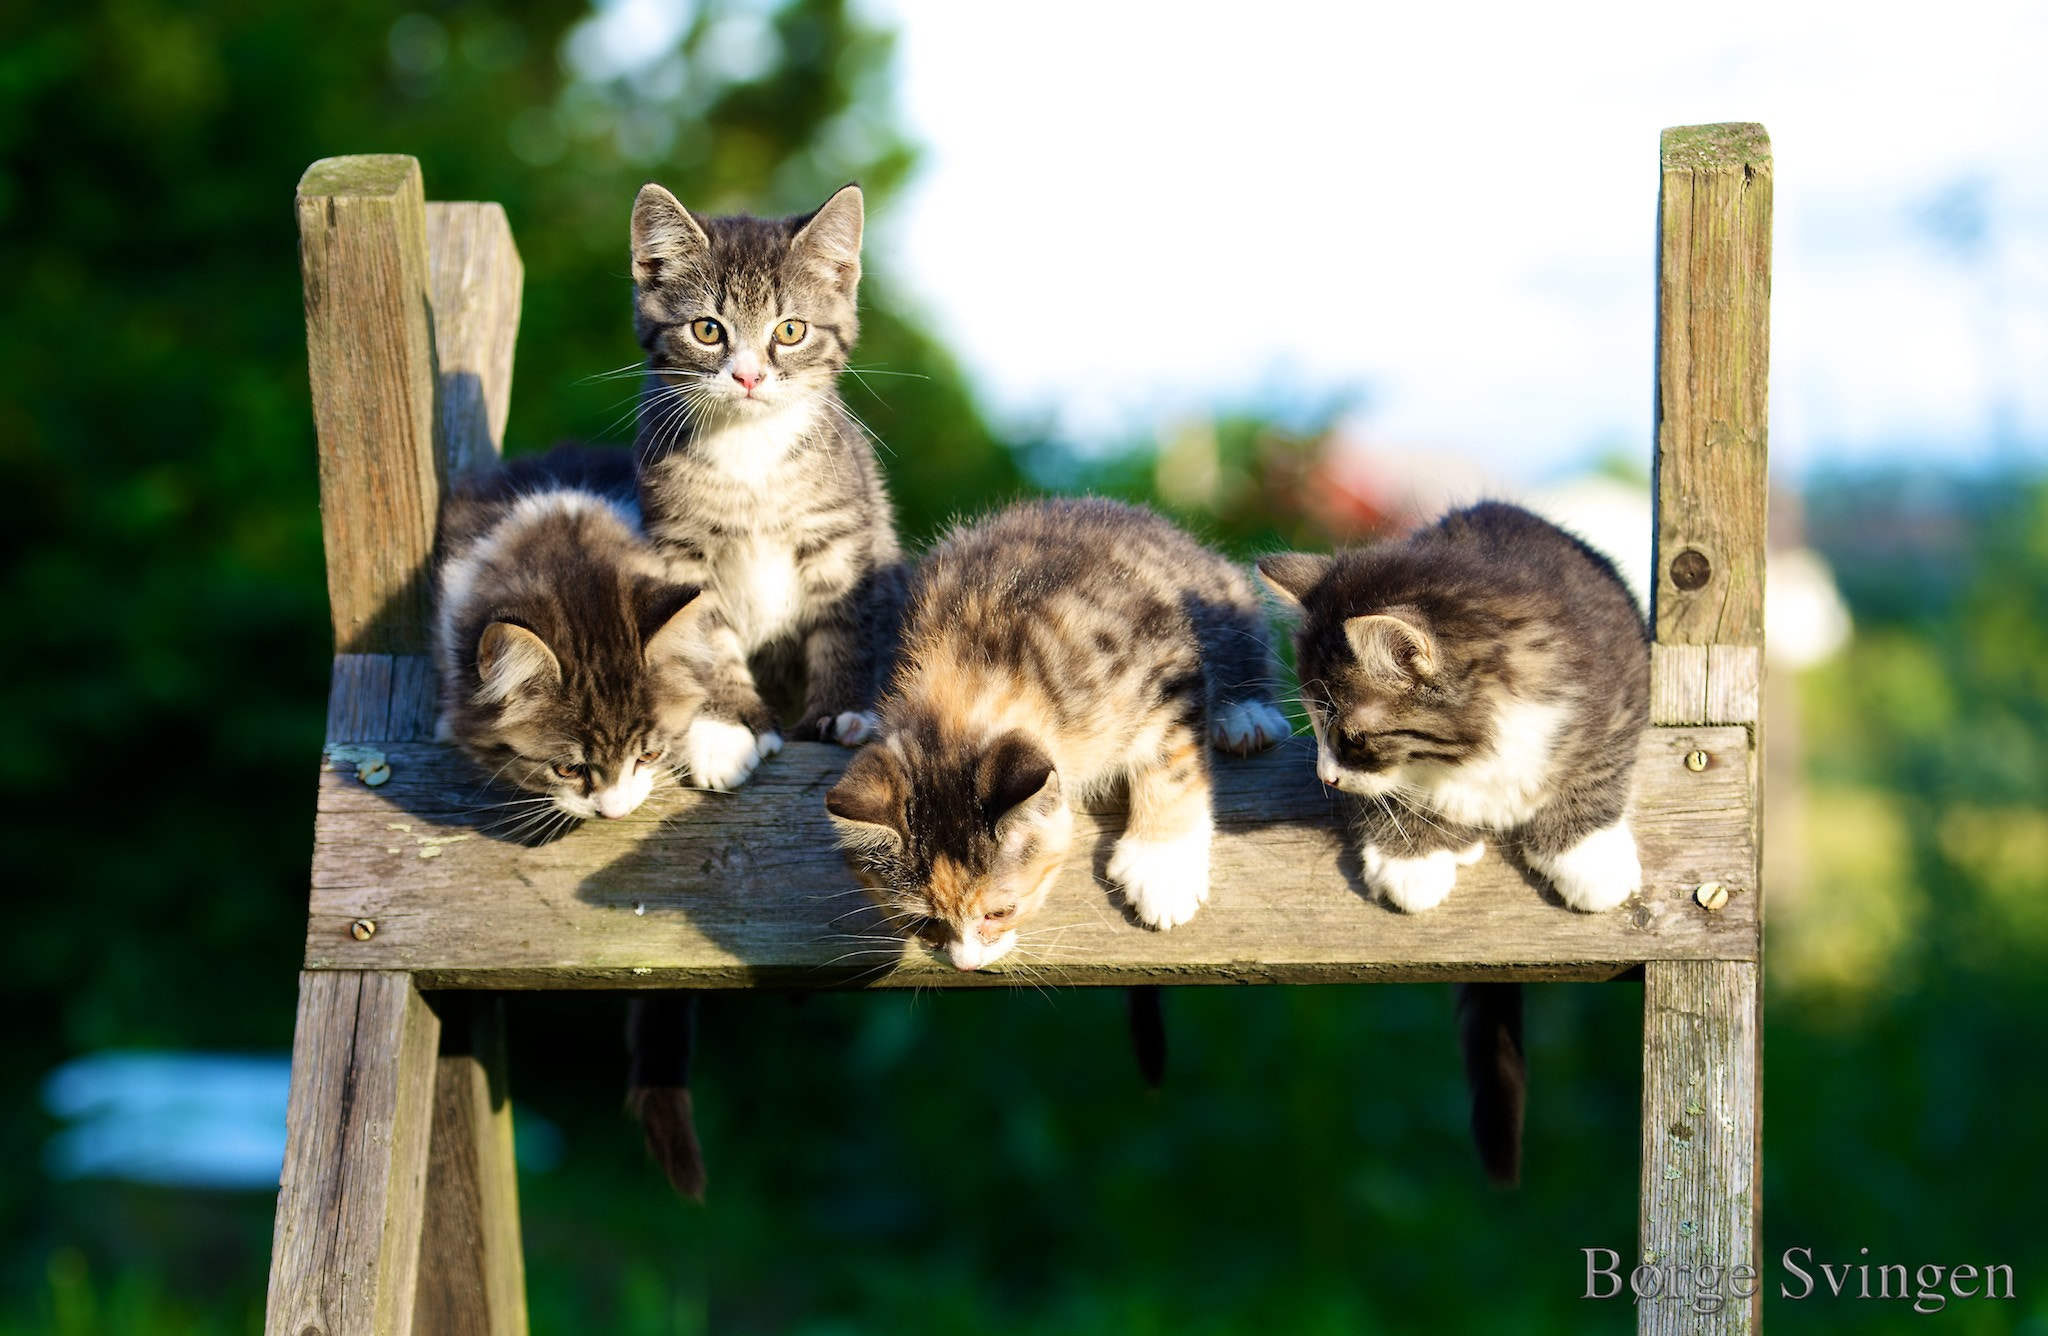 Photograph Kittens by Børge Svingen on 500px